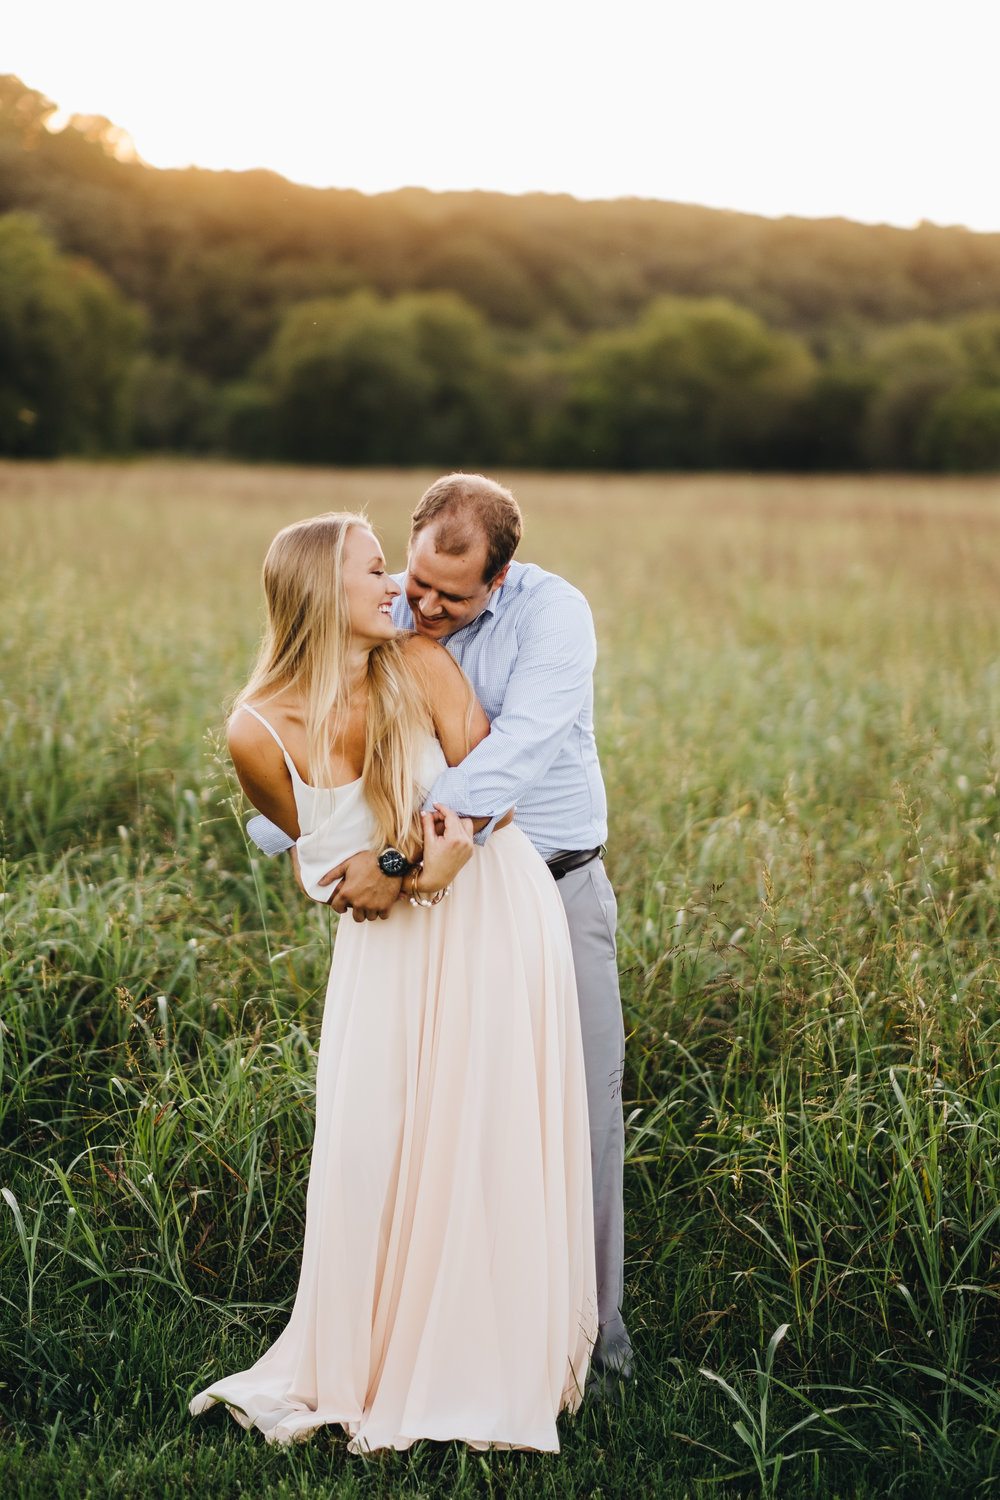 Ashley+Corey.Engagement©mileswittboyer.com2018-133.jpg